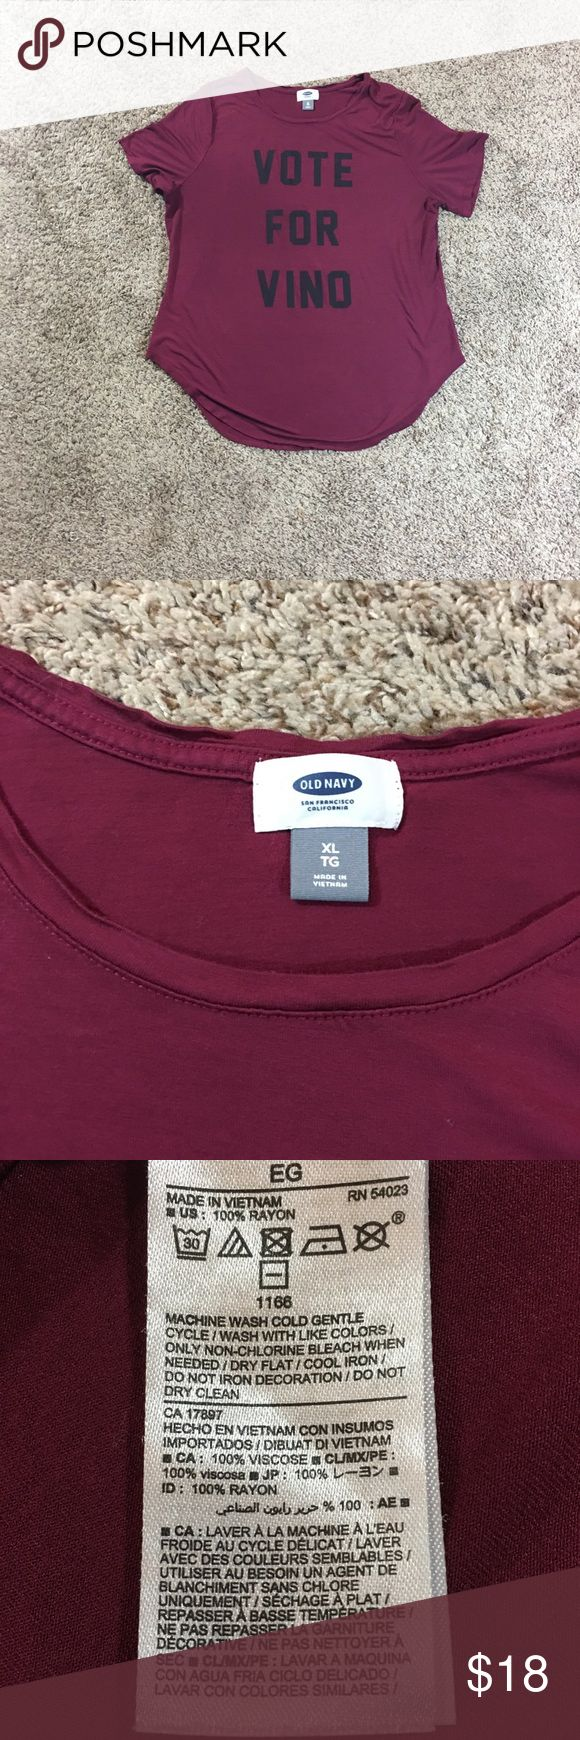 """Vote for vino (wine) graphic tee Women's Old Navy """"Vote for Vino"""" Graphic Tee. Size XL. Approx Measurements Laying Flat: Pit to Pit 21"""" Pit to Bottom Hem 13"""" Excellent Used Condition. Old Navy Tops Tees - Short Sleeve"""